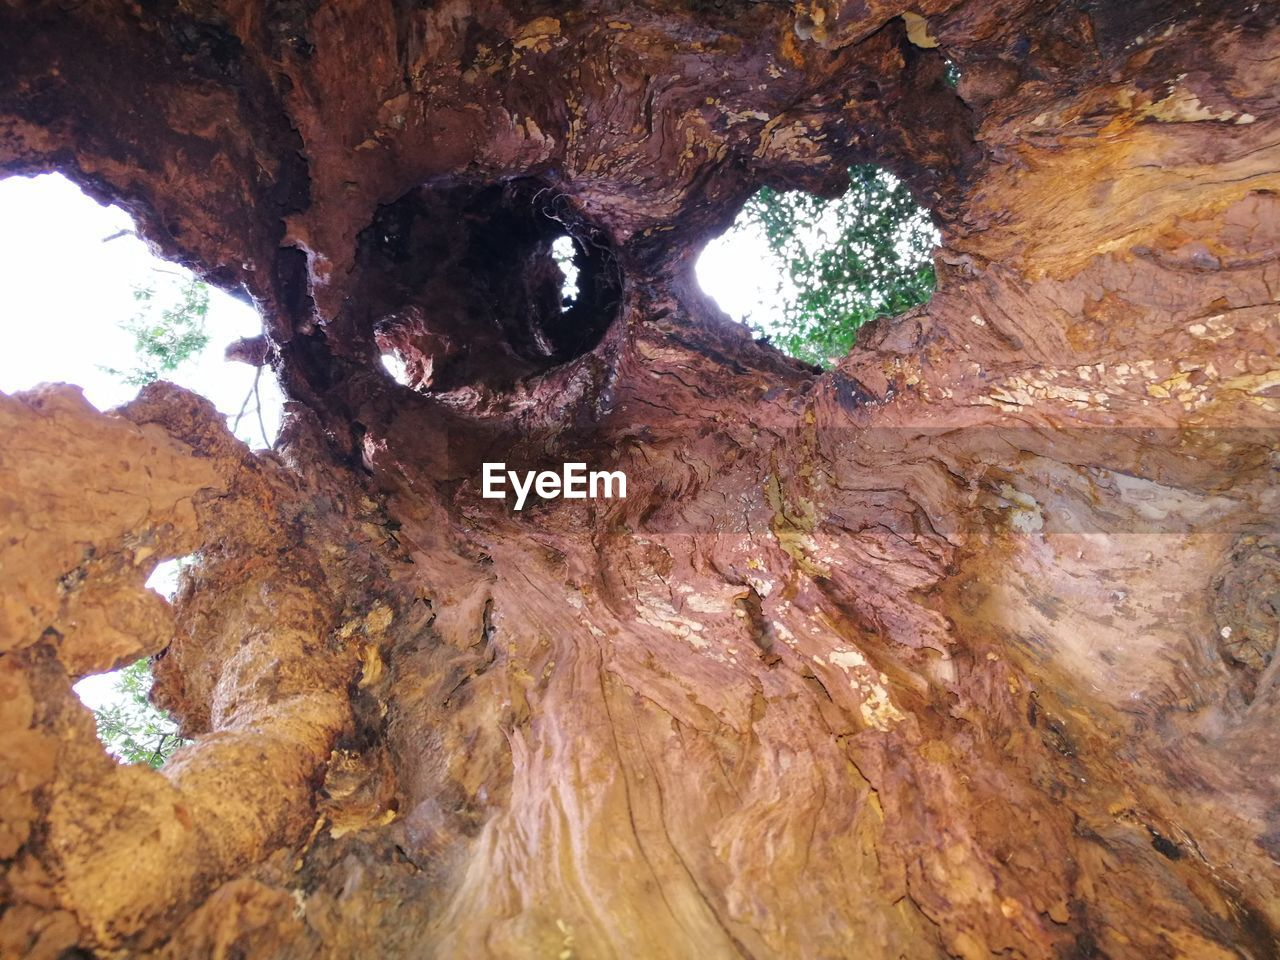 rock - object, rock formation, geology, cave, textured, nature, physical geography, beauty in nature, stalactite, rough, no people, tree trunk, day, tree, outdoors, close-up, rock face, undersea